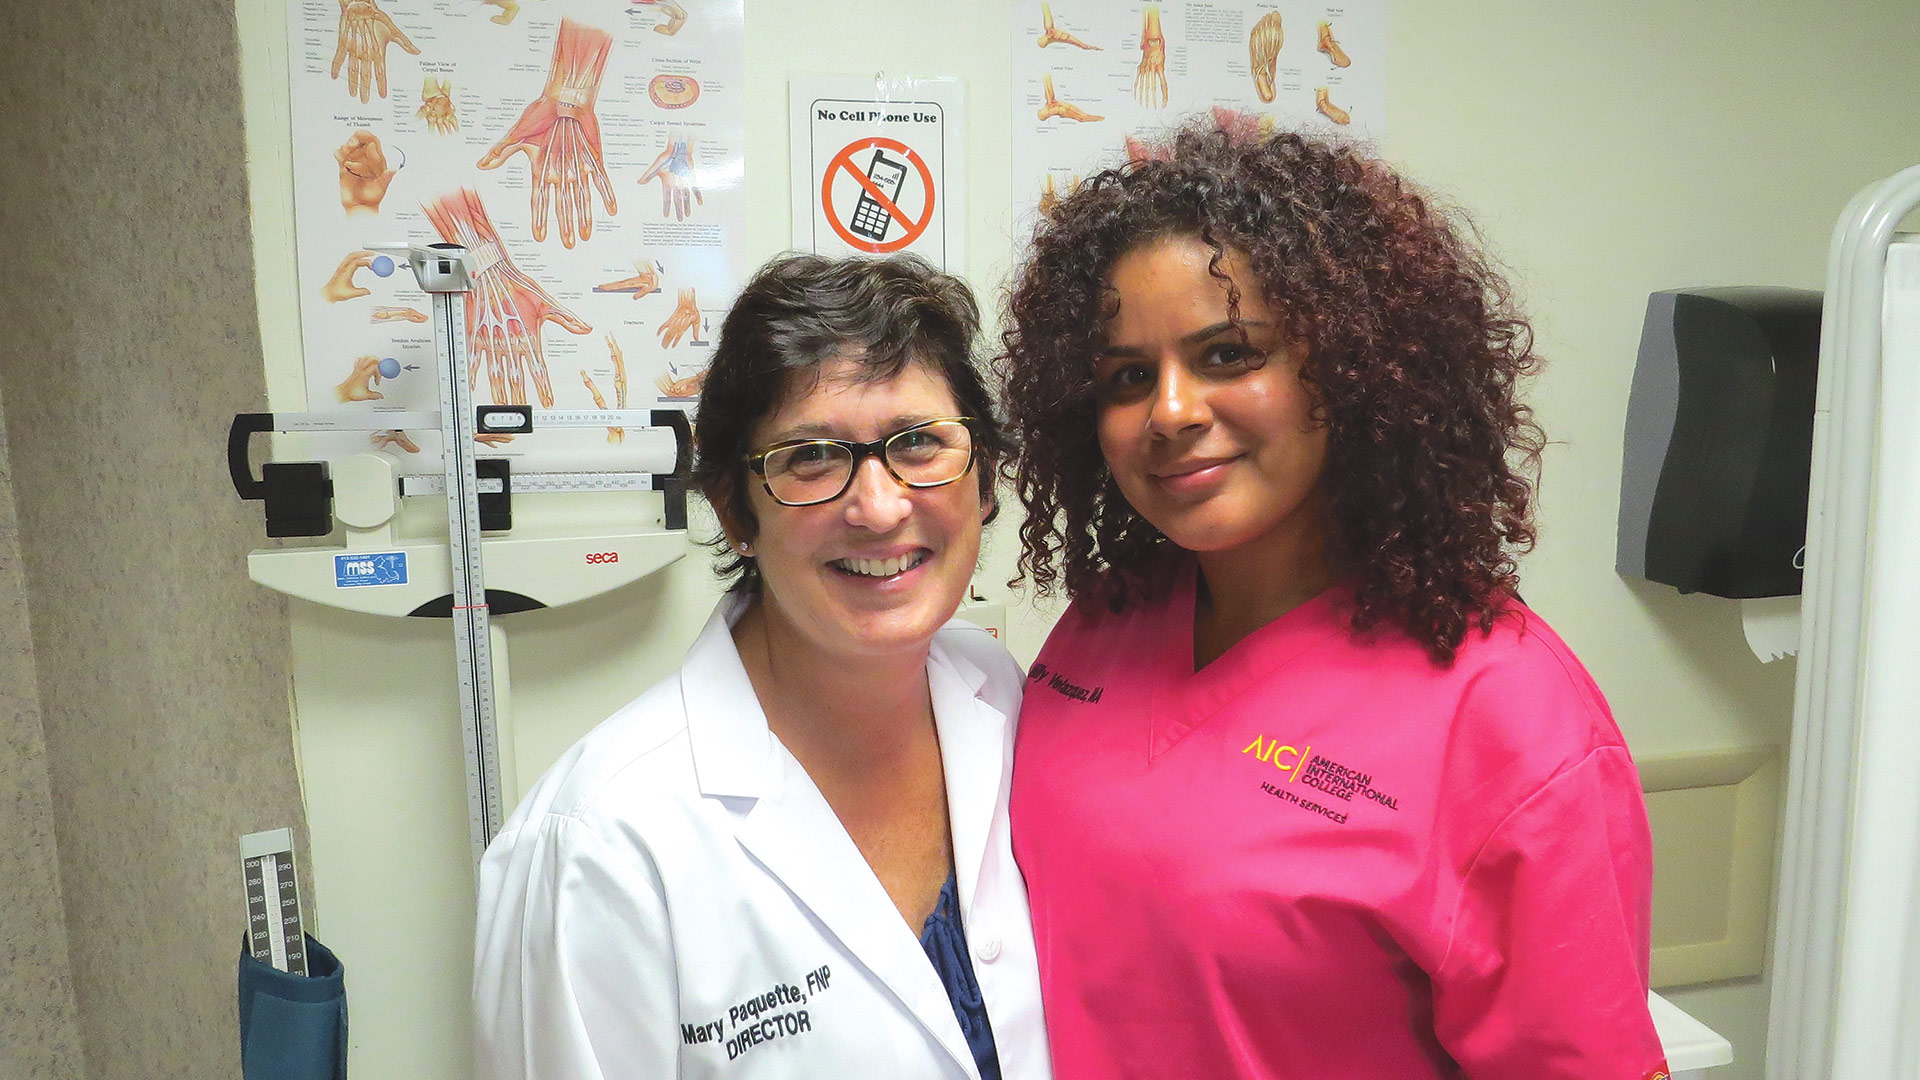 Mary Paquette and Millie Valazquez, office manager and medical assistant at the Dexter Center